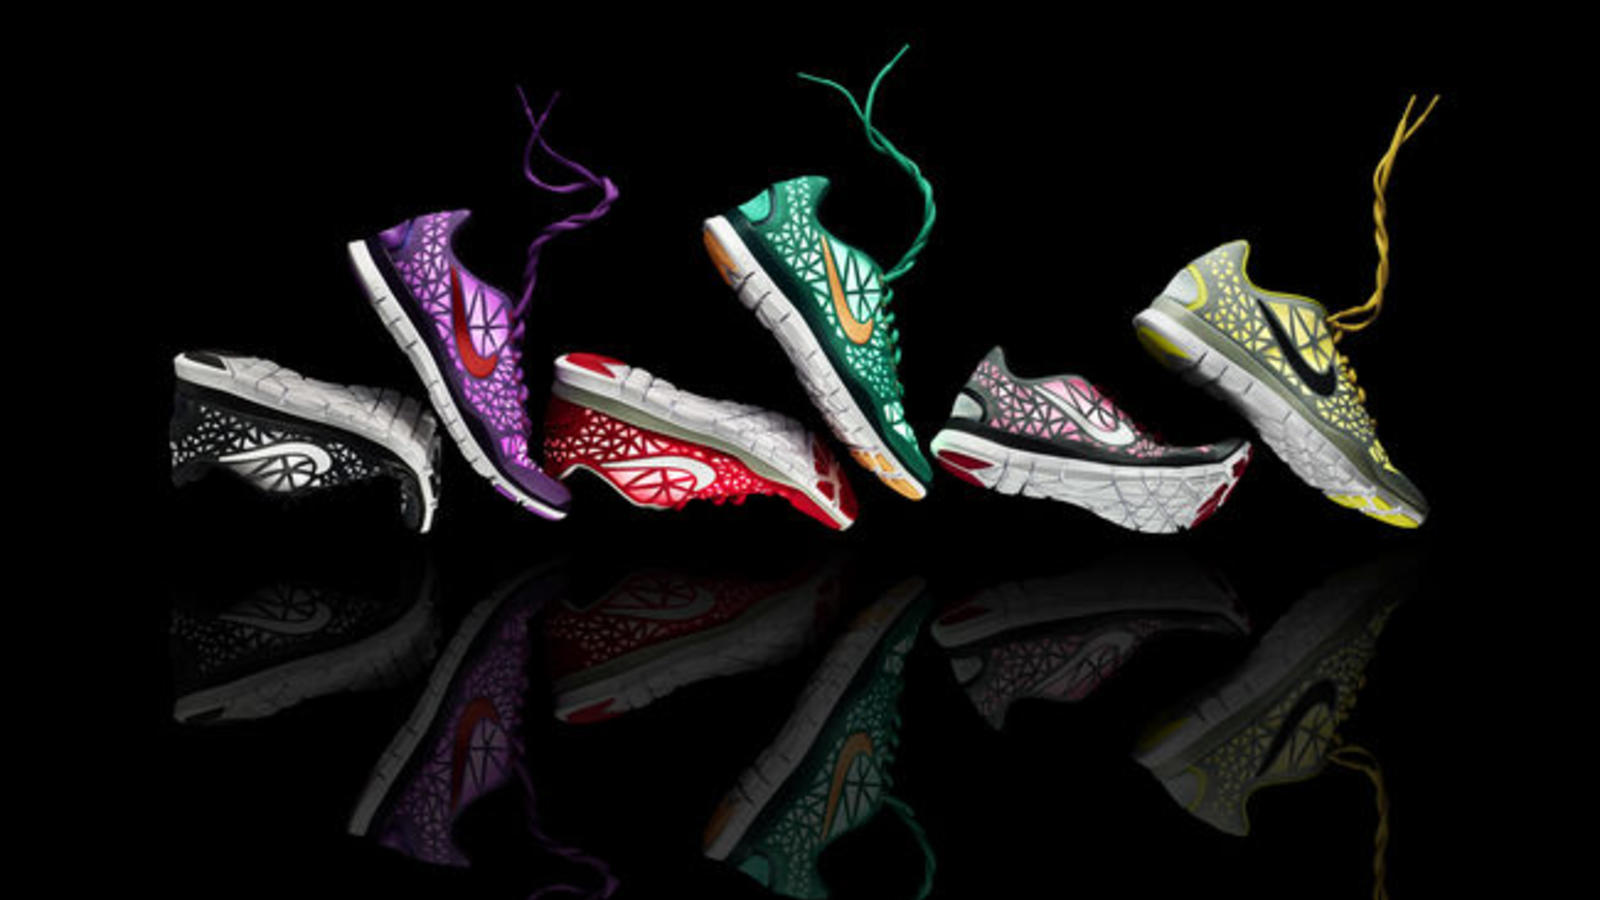 Flex more in the Nike Free TR Fit 3